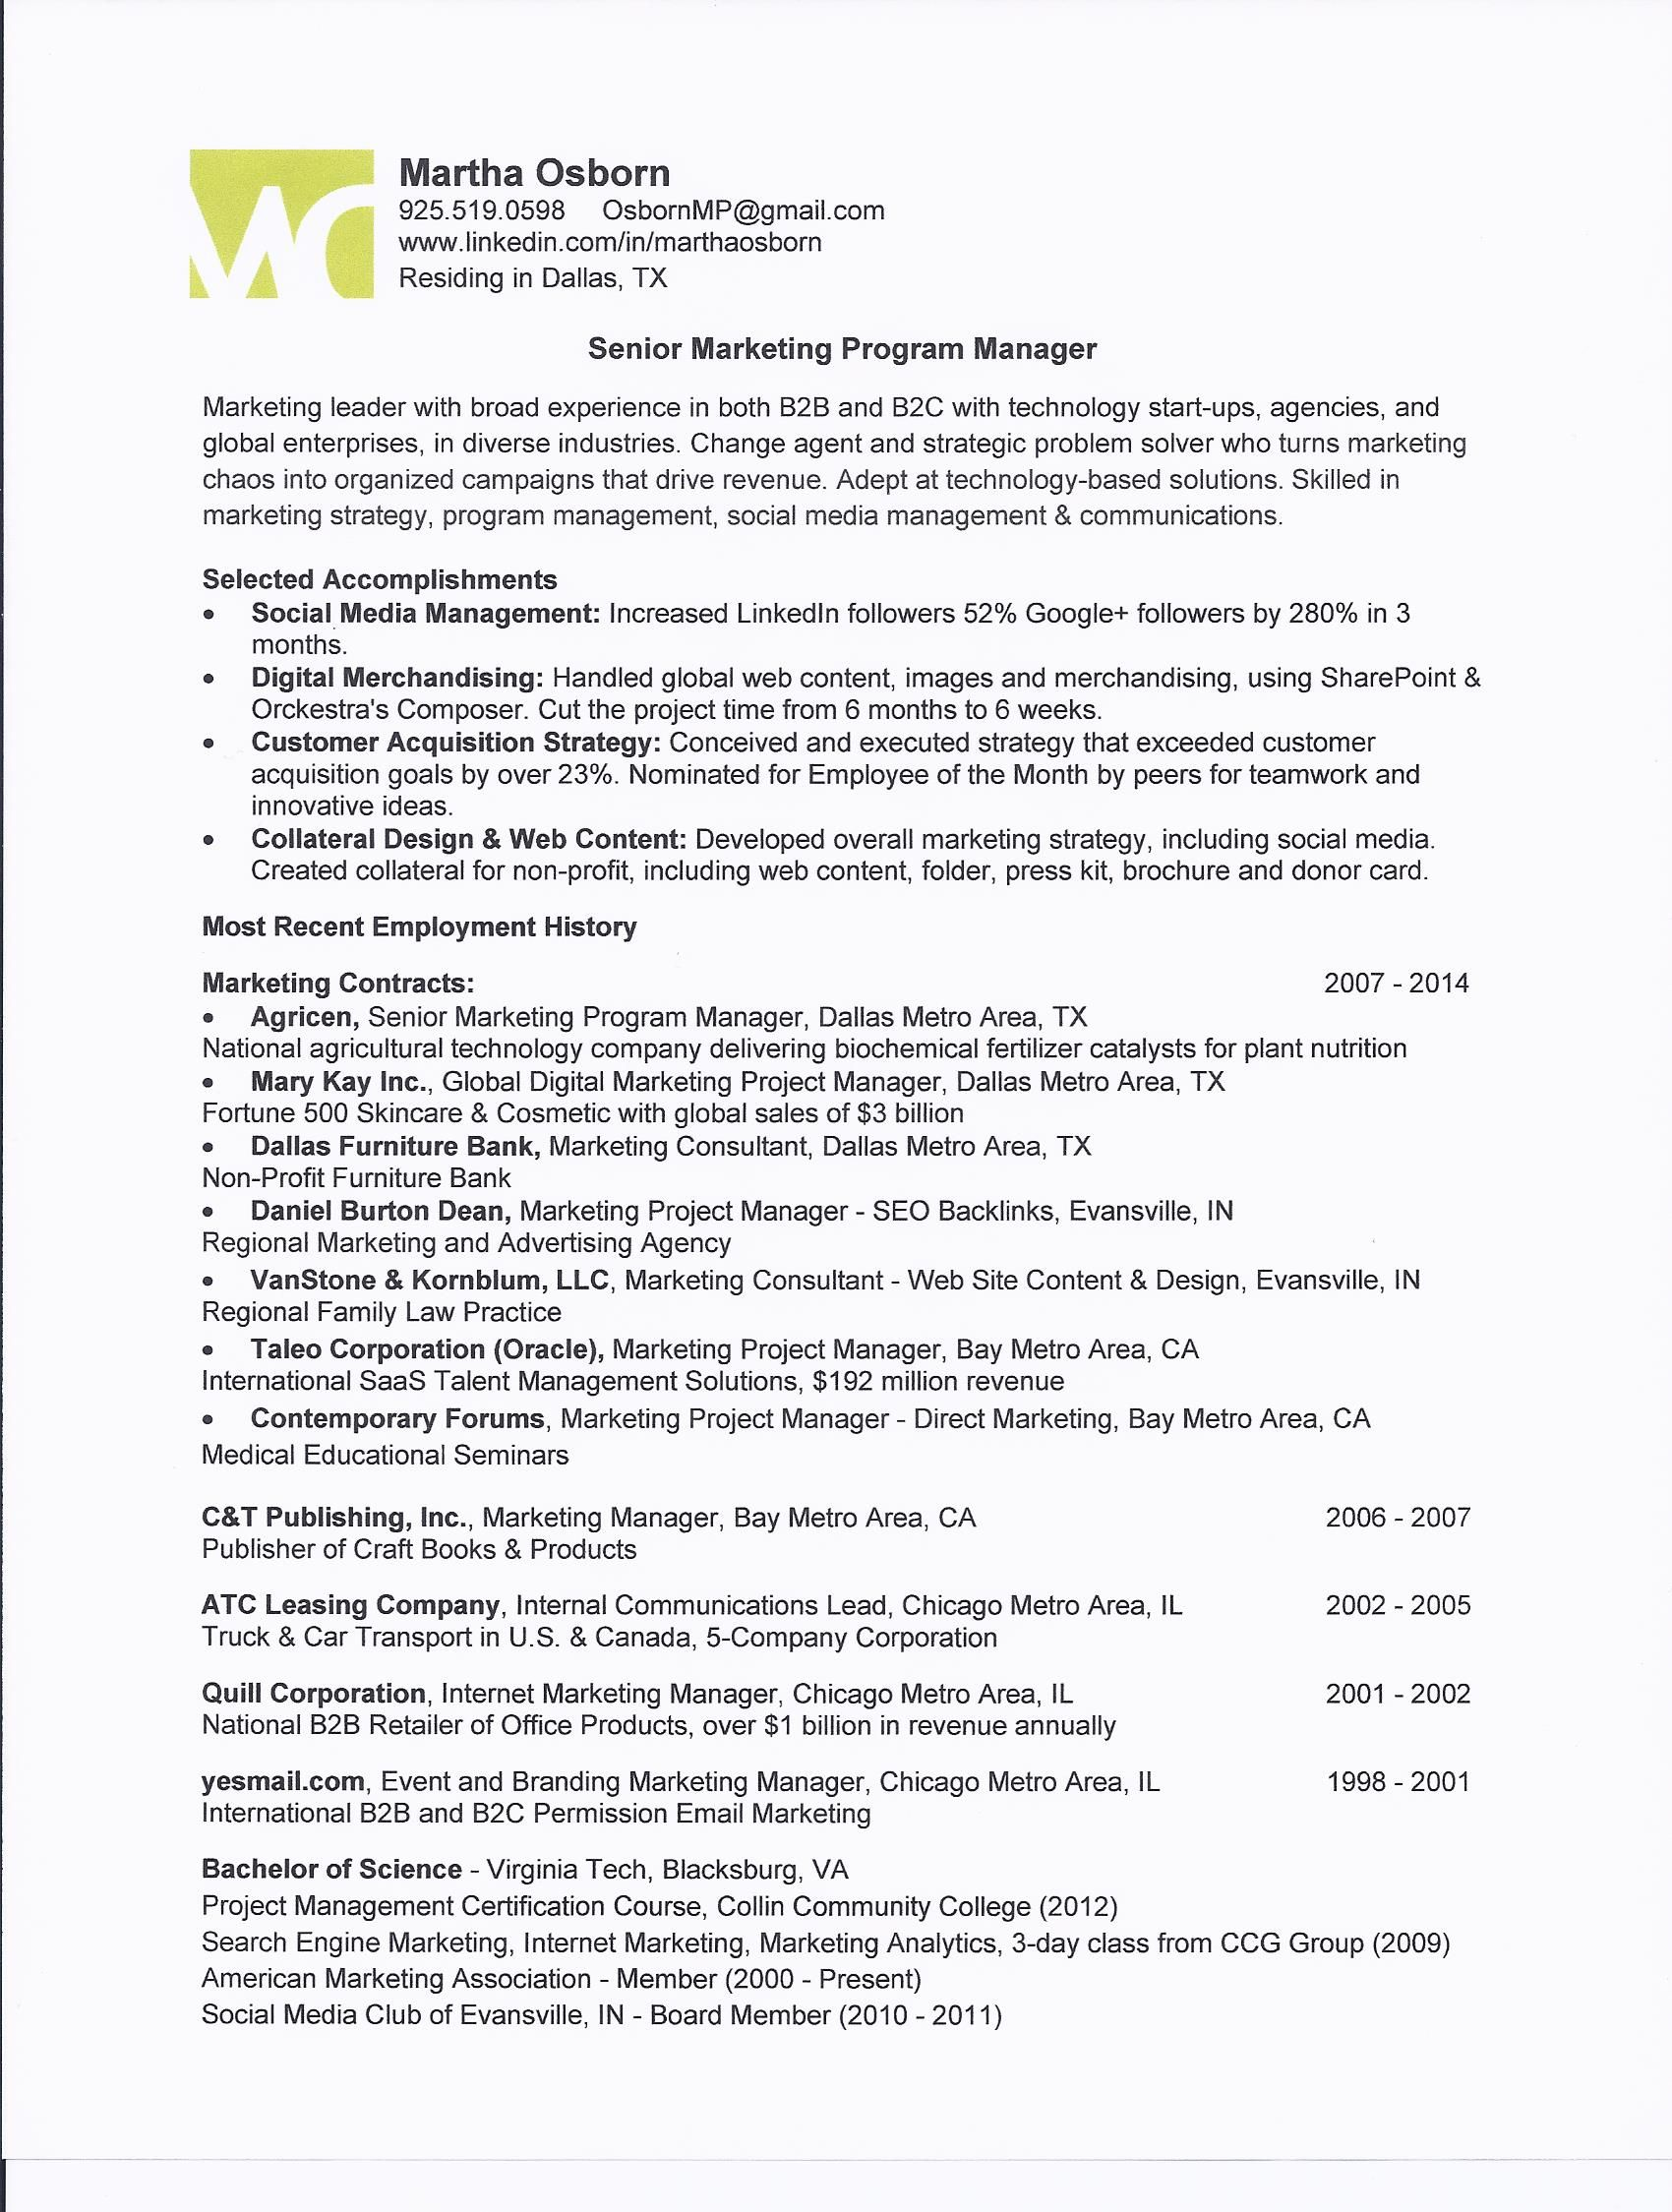 Program Manager Resume Beauteous Marketing Program Manager Onepage Resume For Martha Osborn